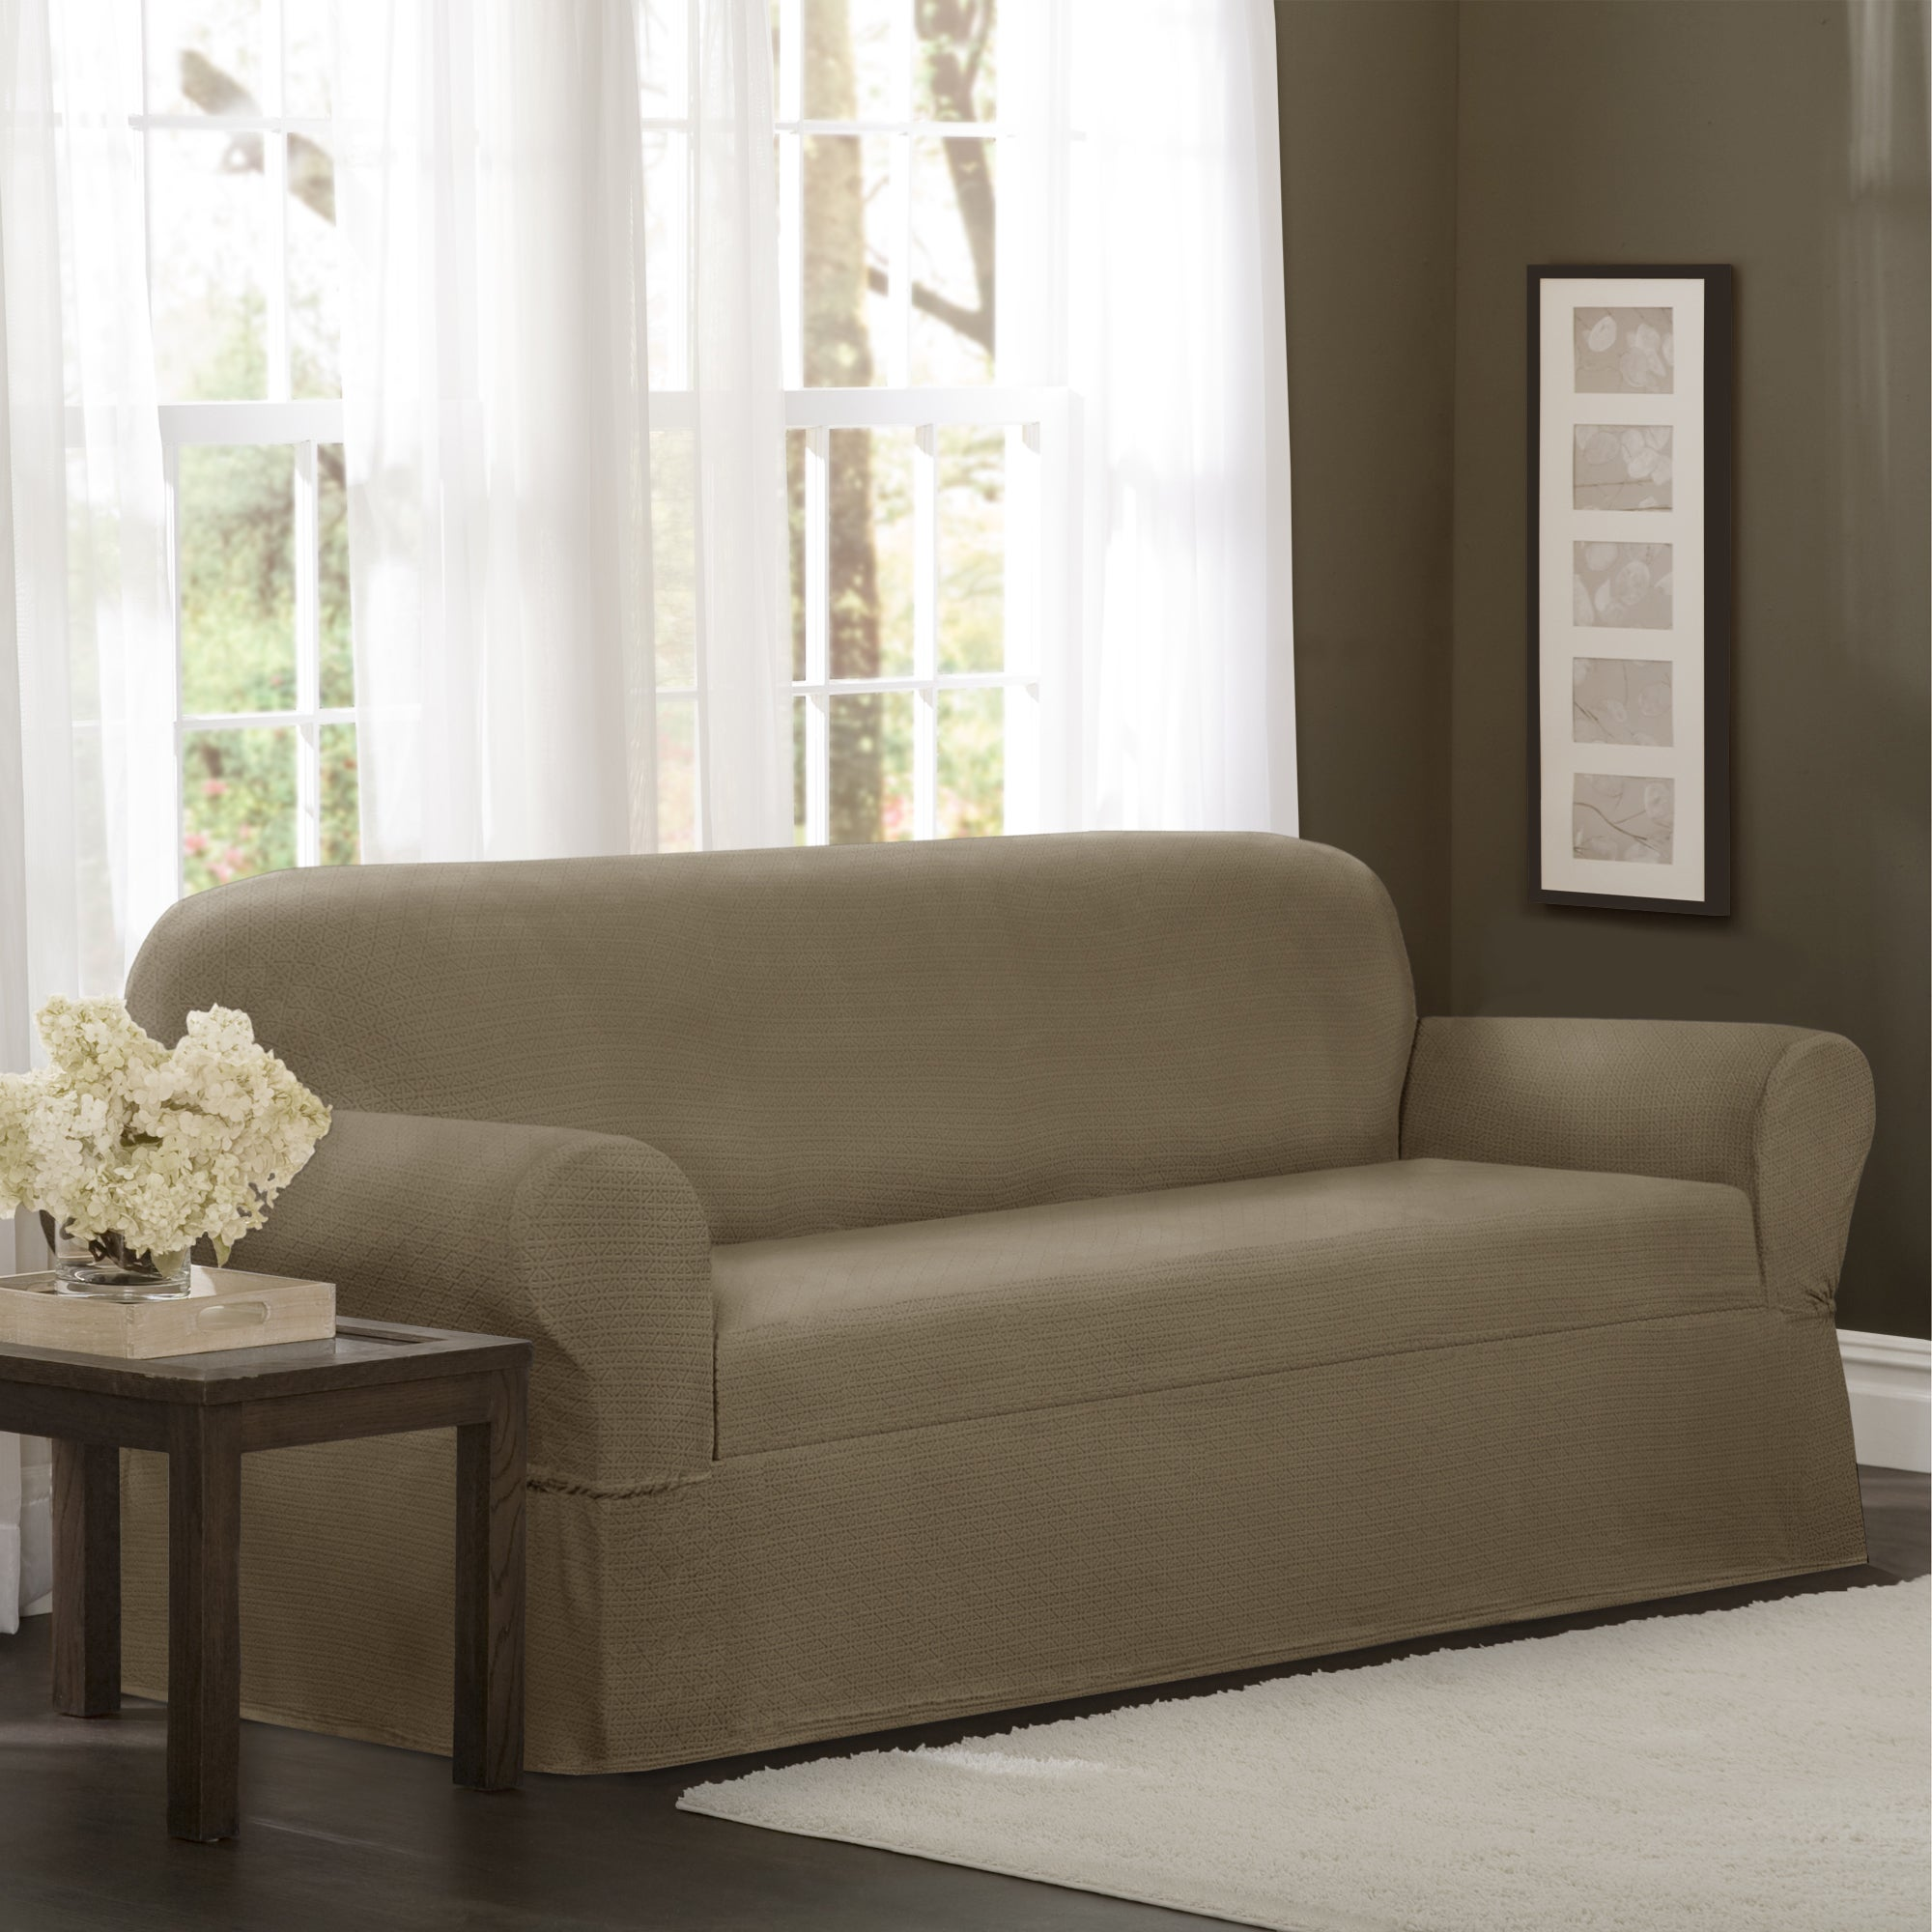 maytex torie 1 piece stretch sofa slipcover ebay. Black Bedroom Furniture Sets. Home Design Ideas